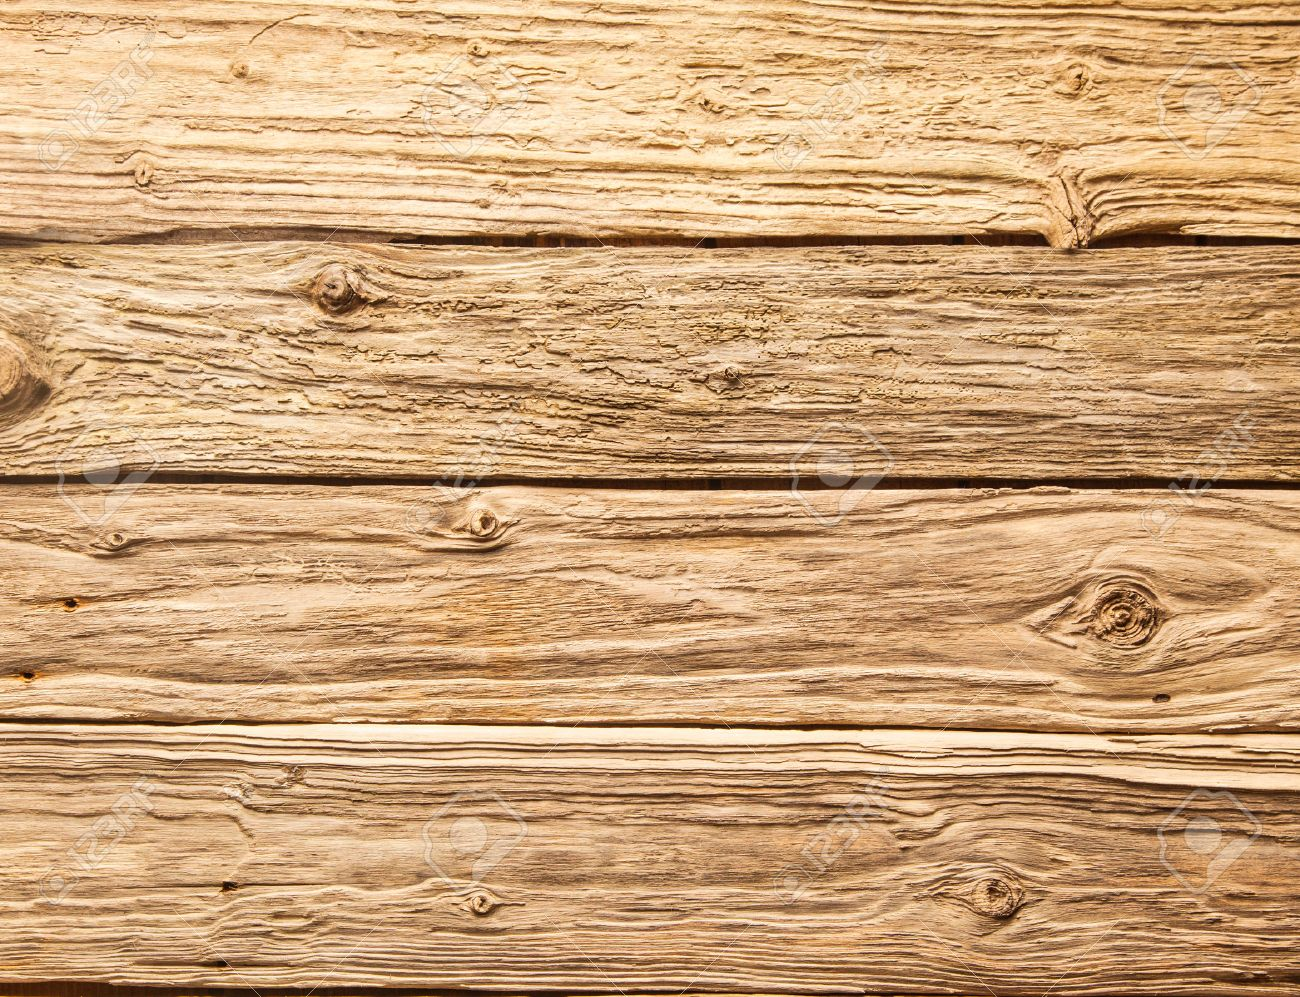 horizontal wood background. Rustic Background Of Very Rough Textured Weathered Wooden Planks With Knots In A Horizontal Parallel Pattern Wood